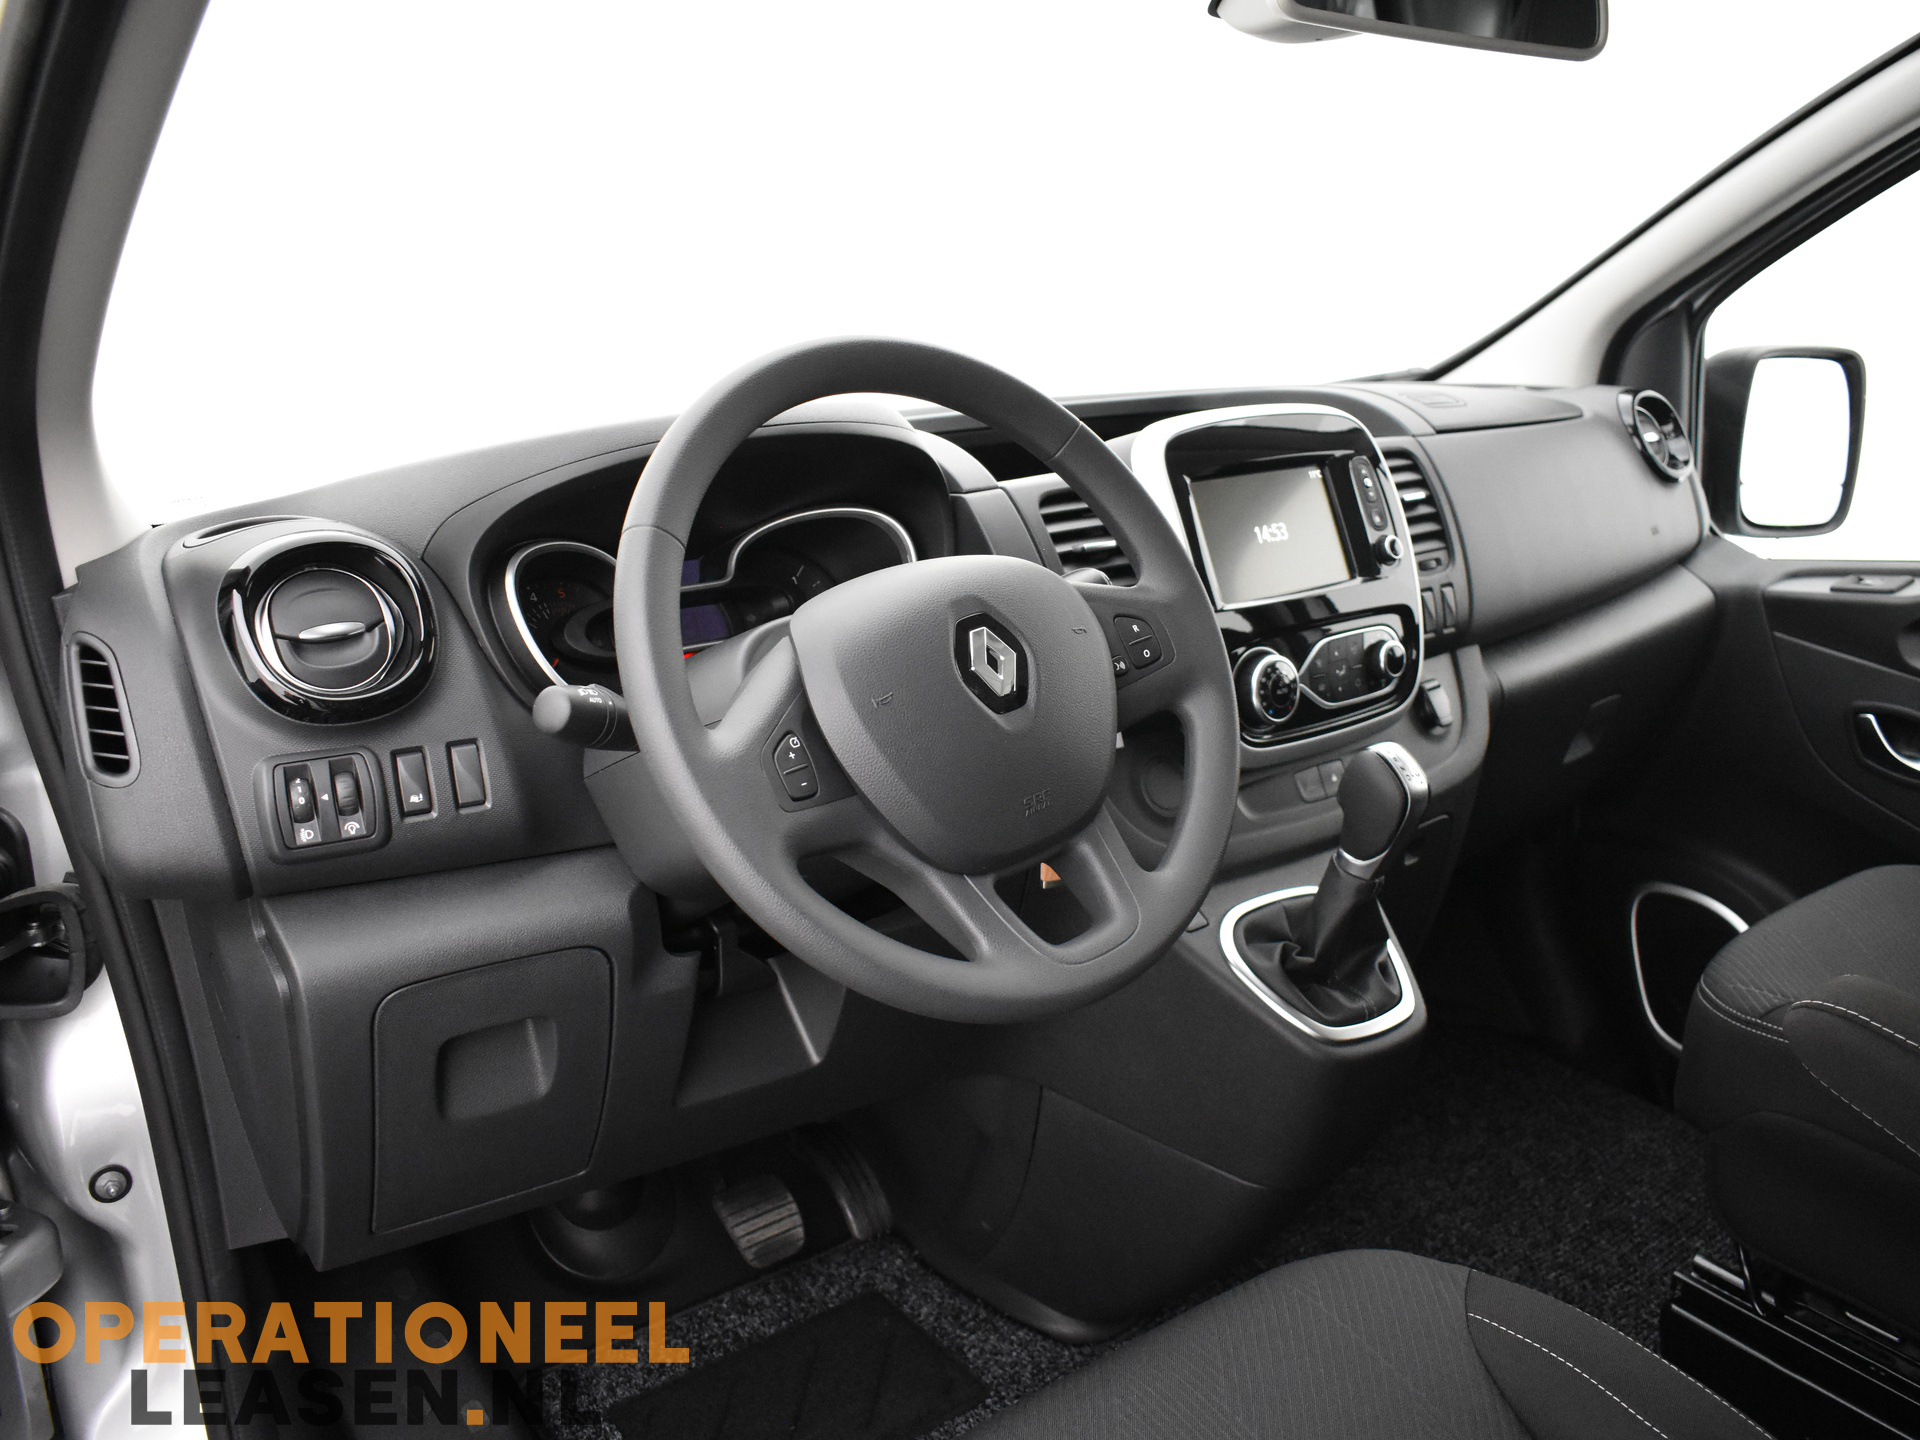 Operational lease Renault master traffic-3